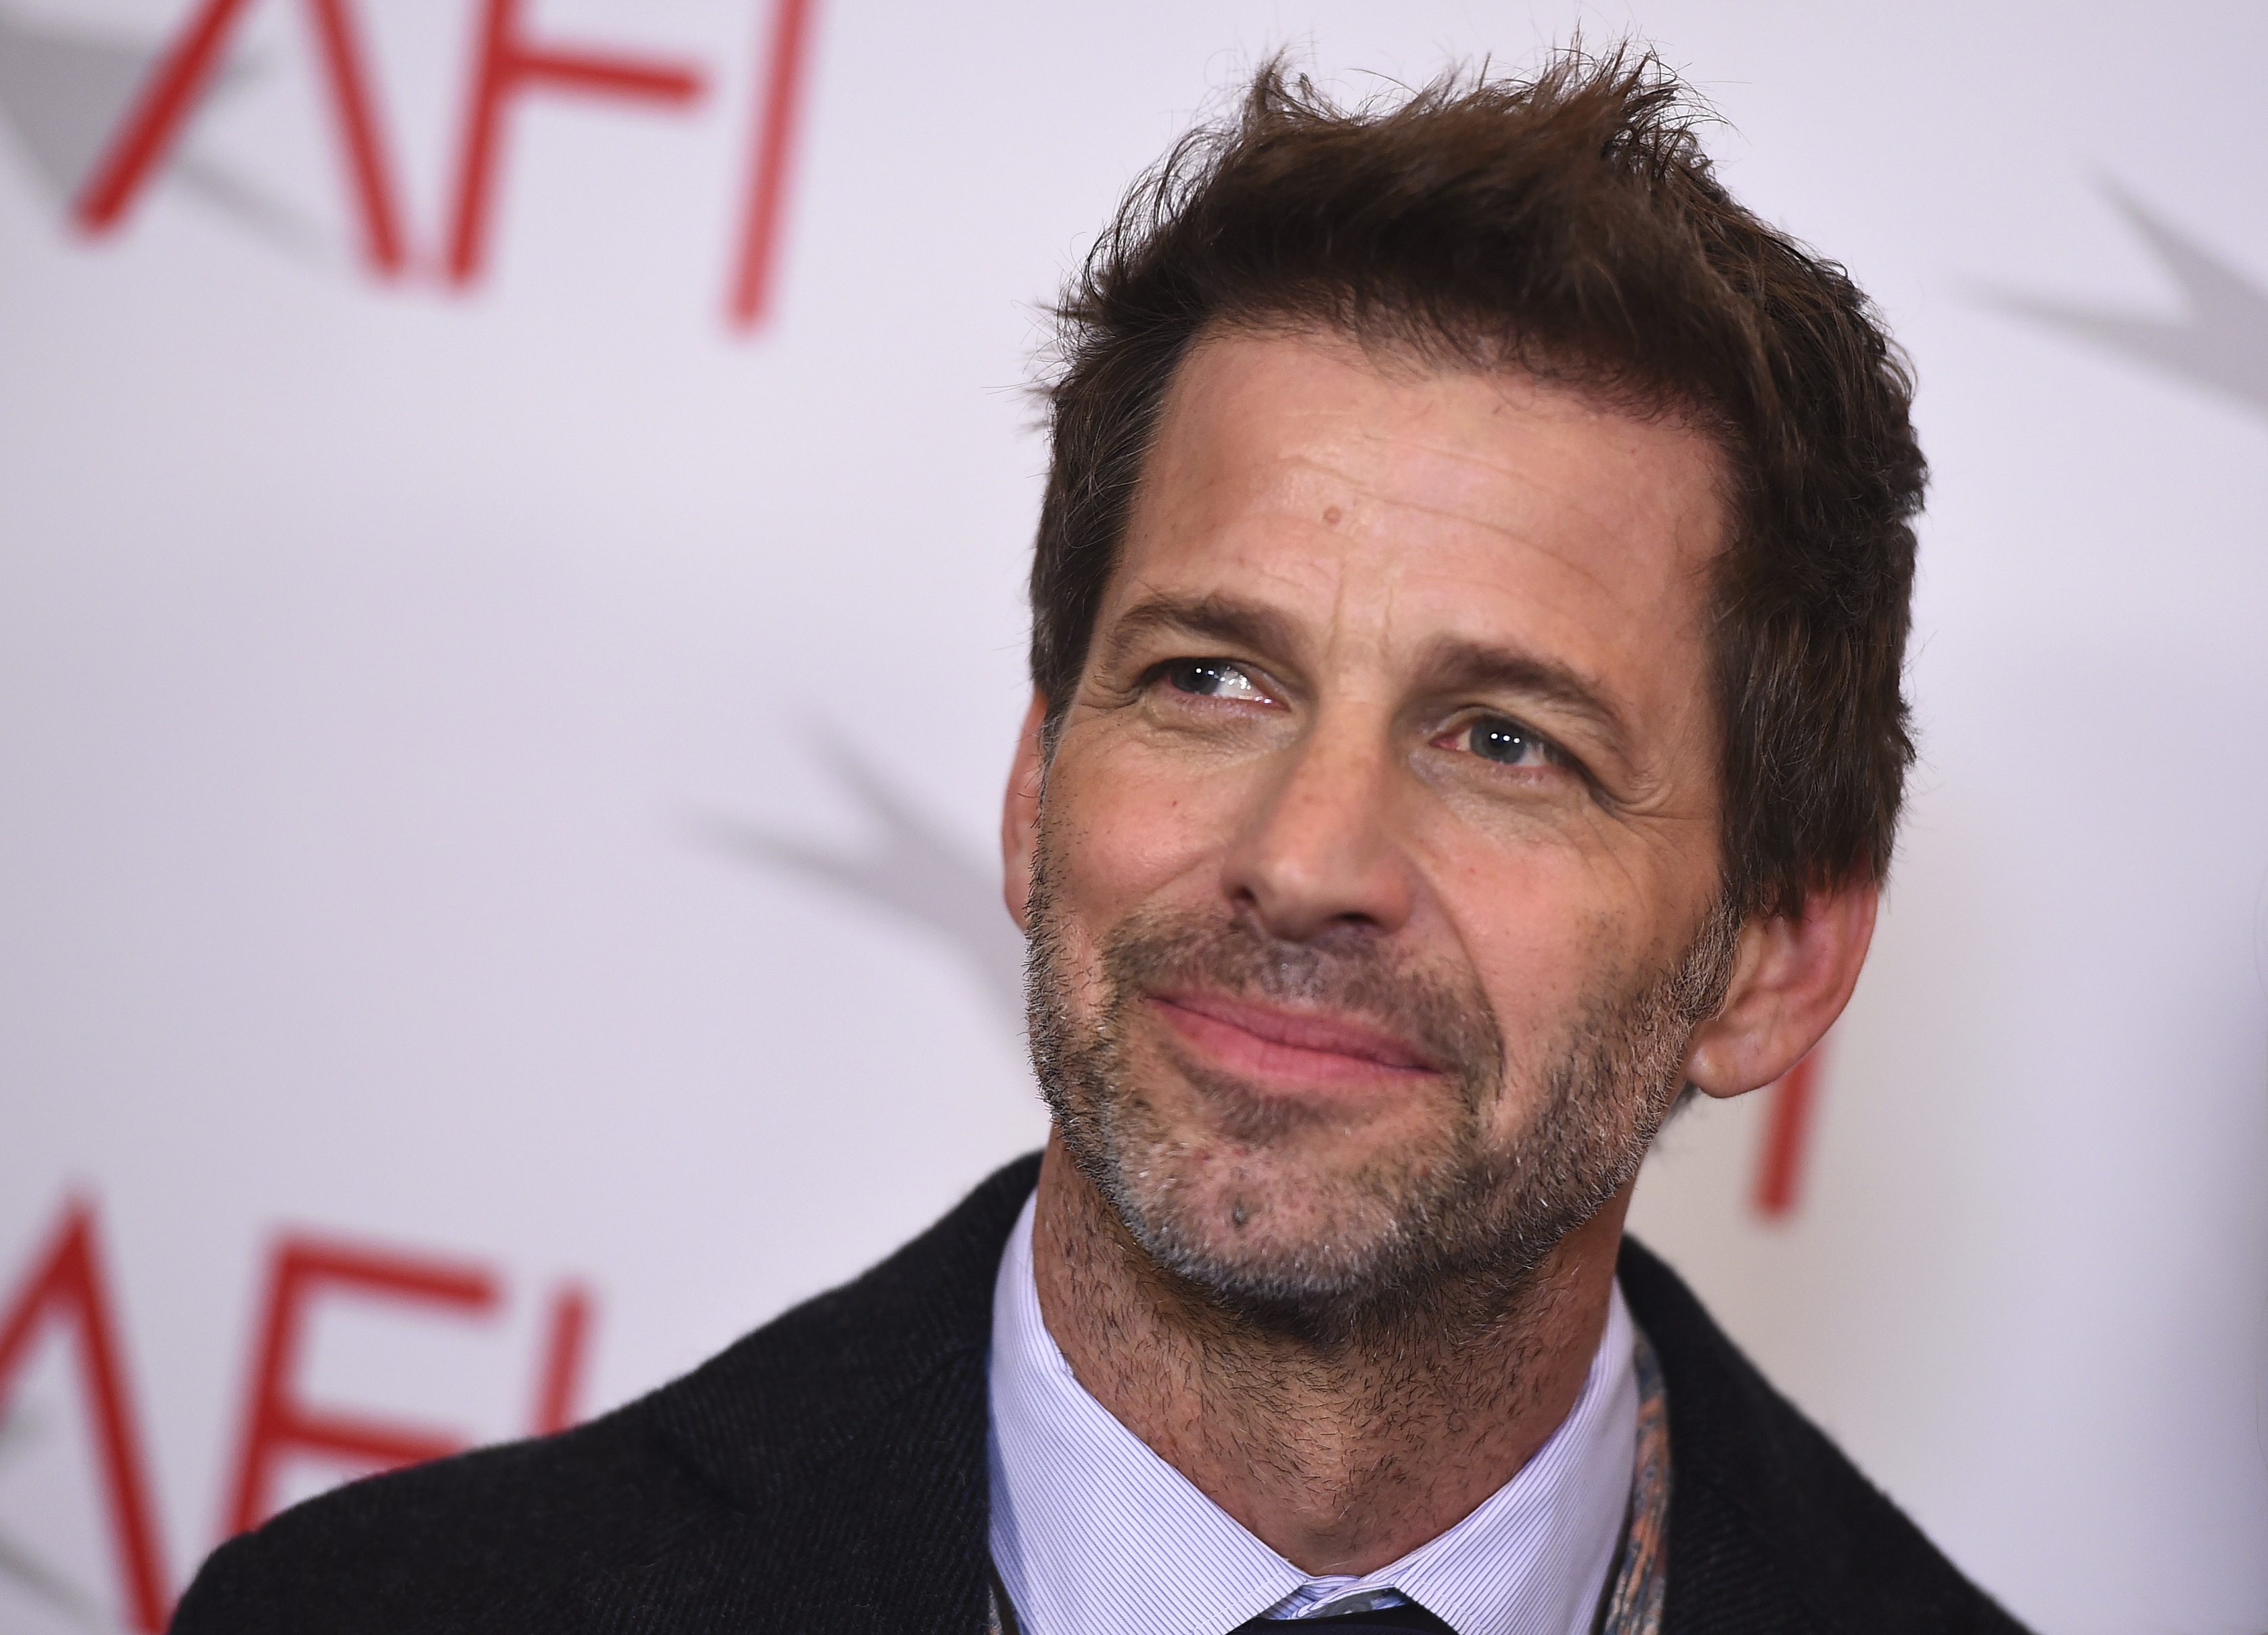 Zack Snyder To Direct Sci-Fi Pic 'Rebel Moon' For Netflix – Deadline